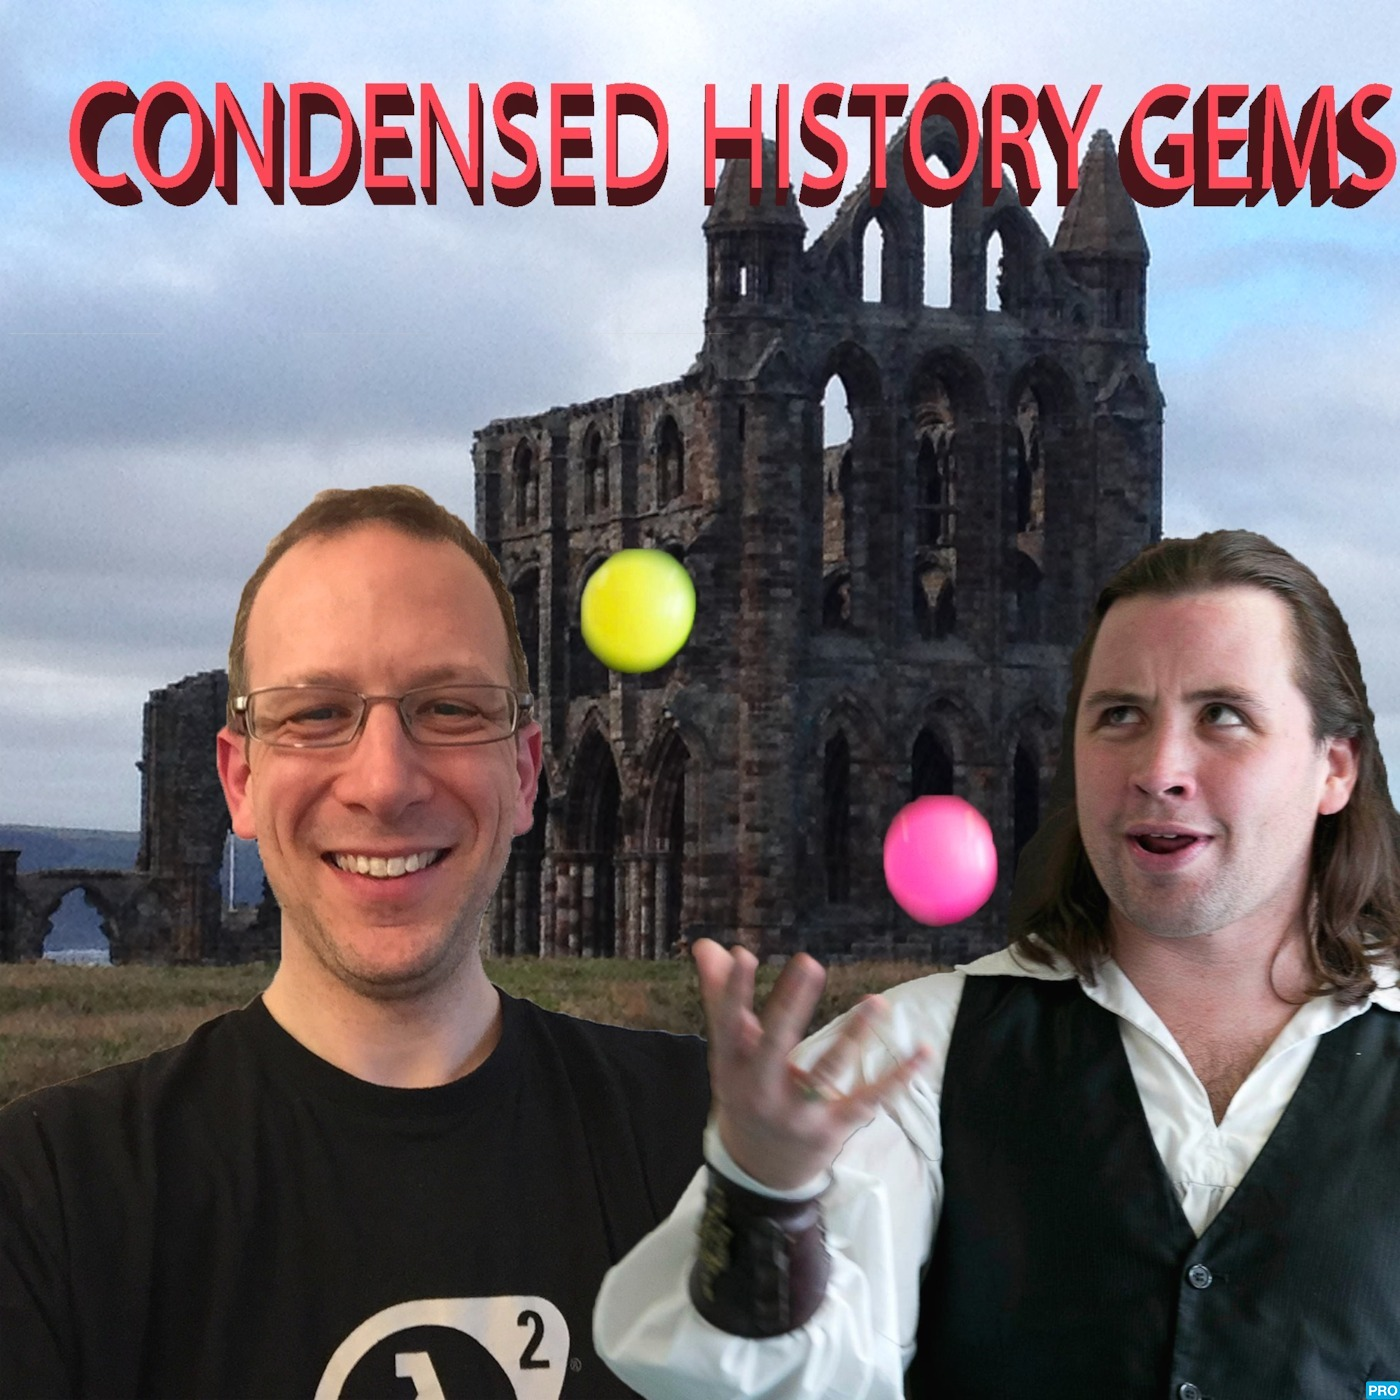 Condensed History Gems